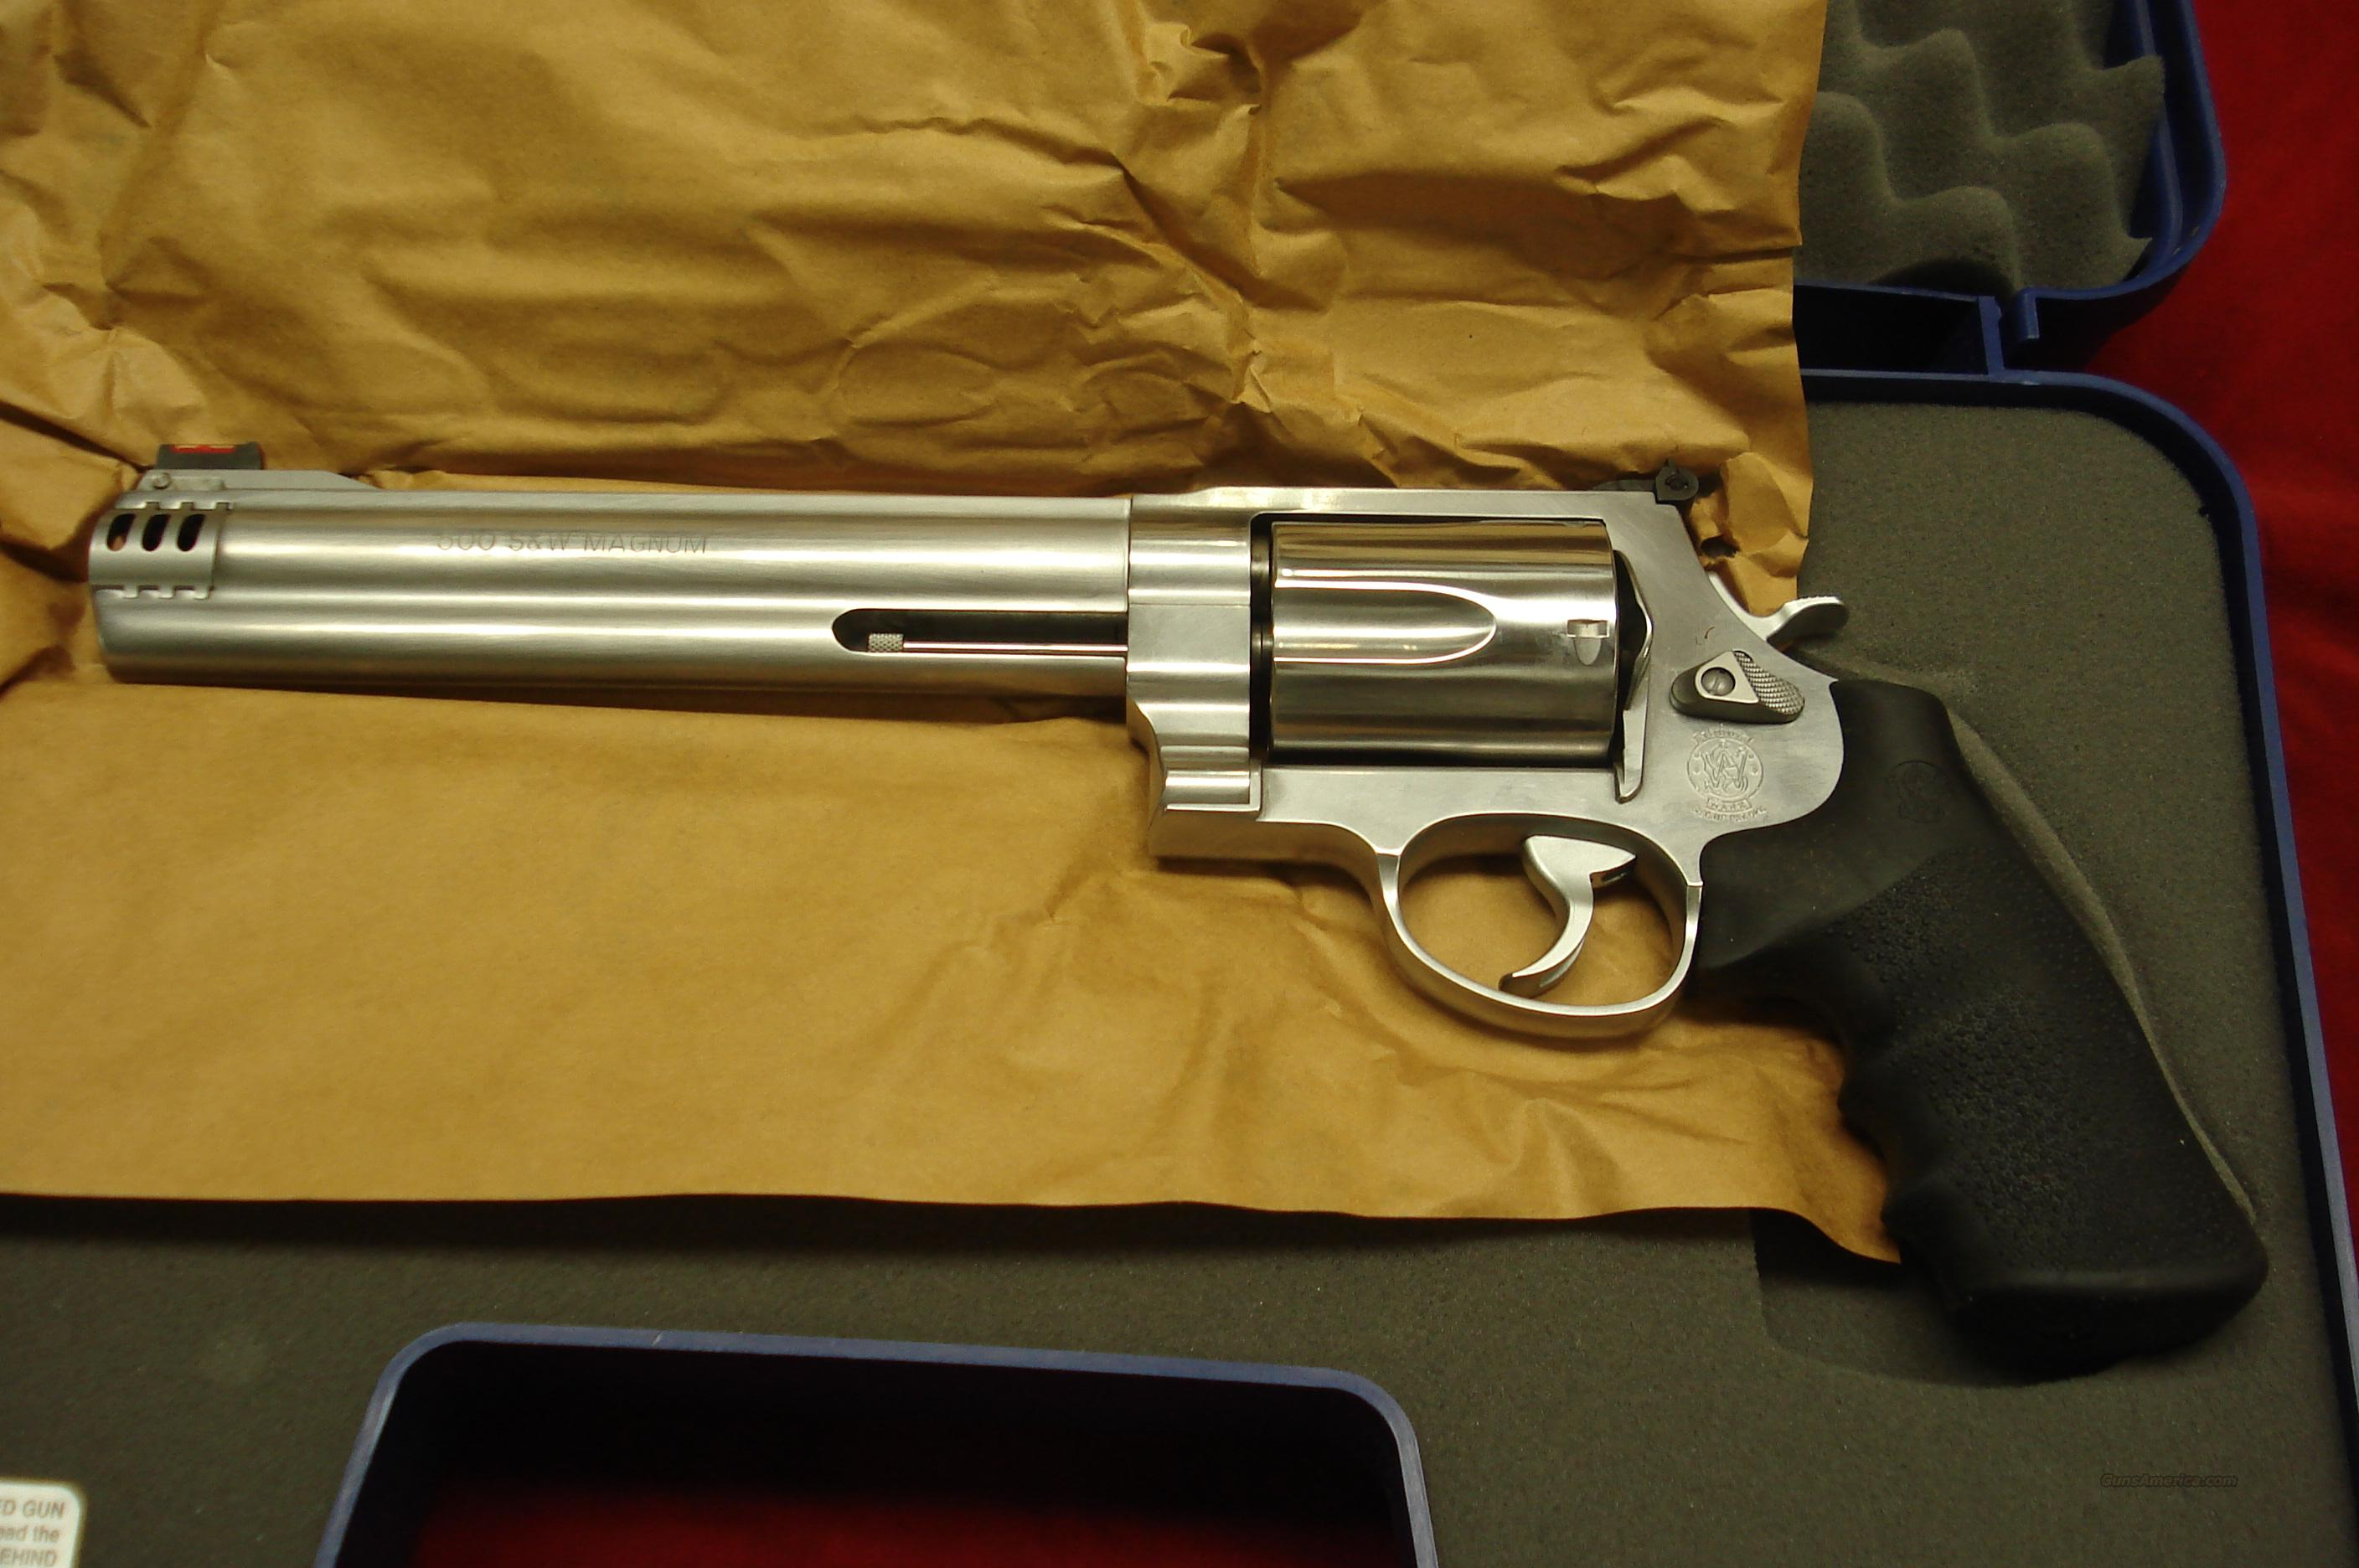 "SMITH AND WESSON MODEL 500 STAINLESS 500S&W CAL. 8 3/8"" HI-VIS SIGHT NEW  Guns > Pistols > Smith & Wesson Revolvers > Full Frame Revolver"